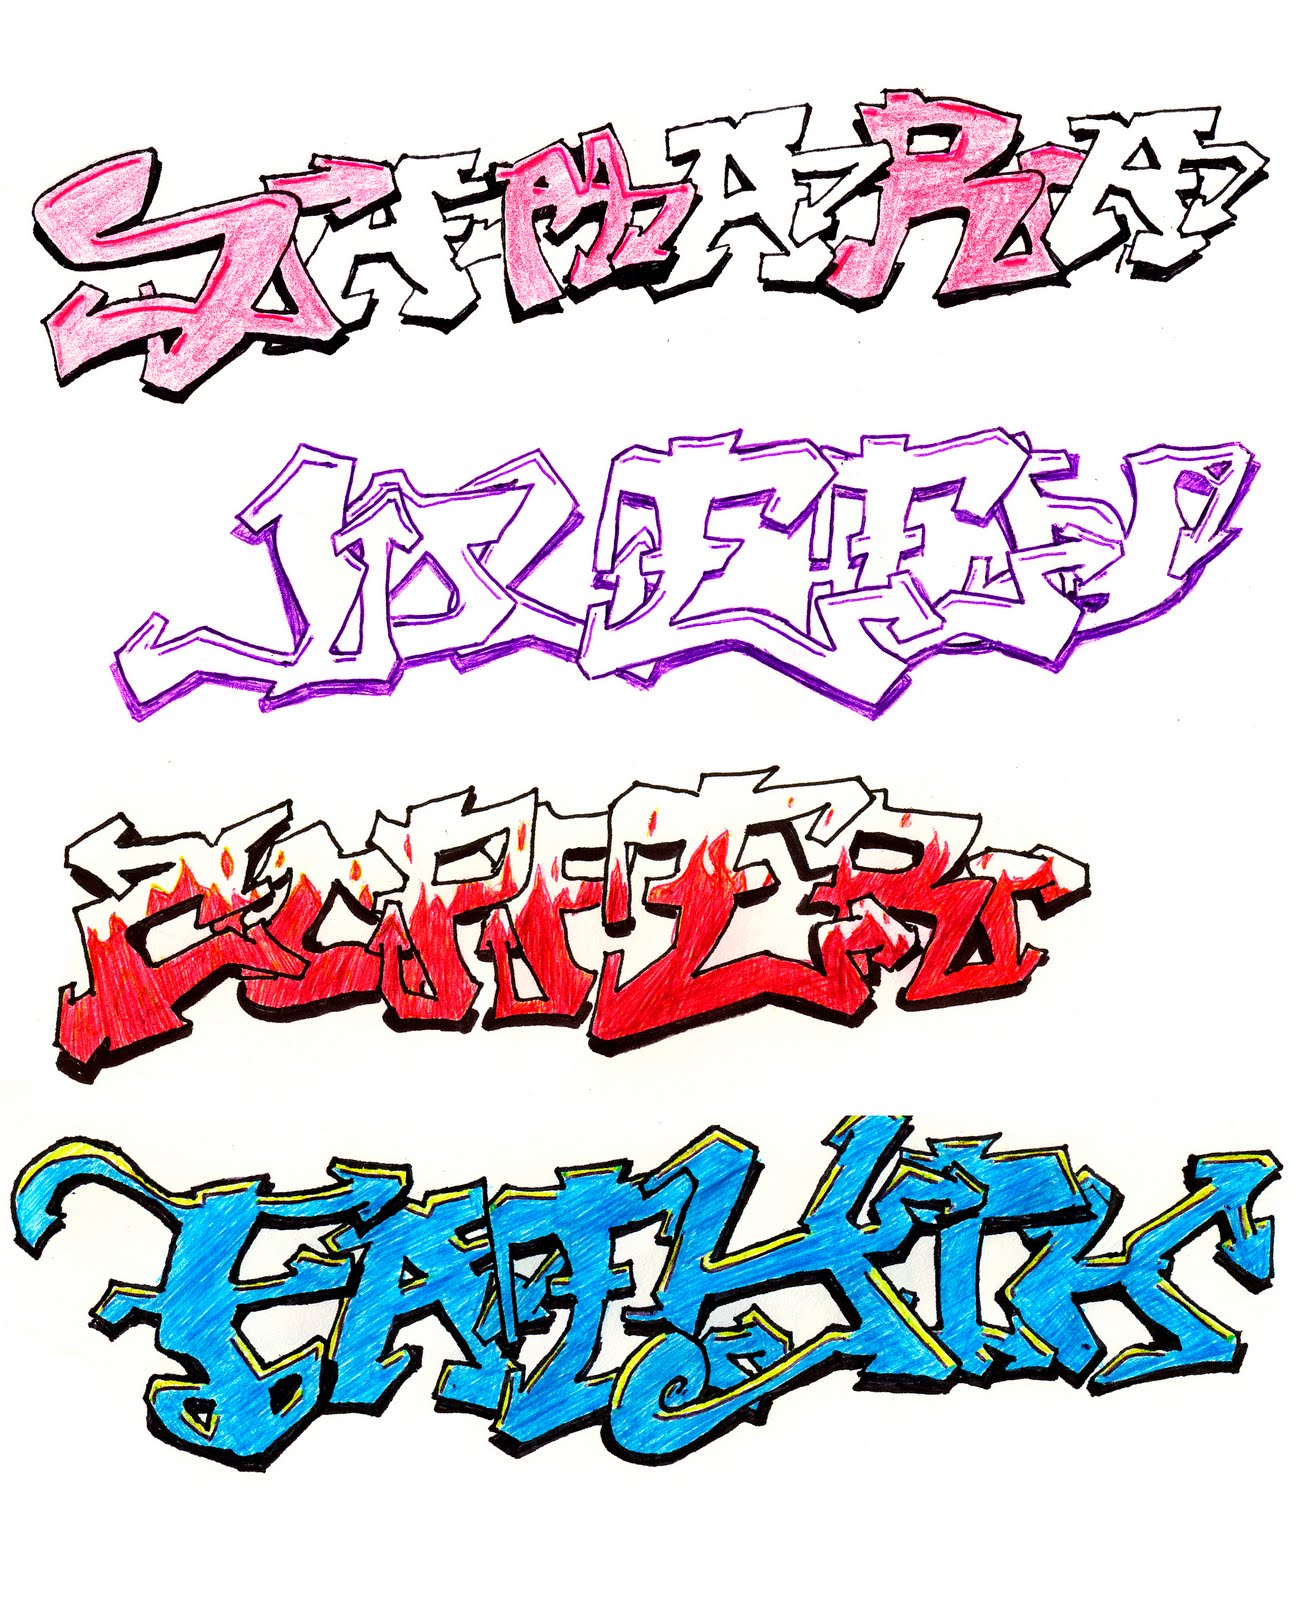 Steps of How to Draw Graffiti Names?